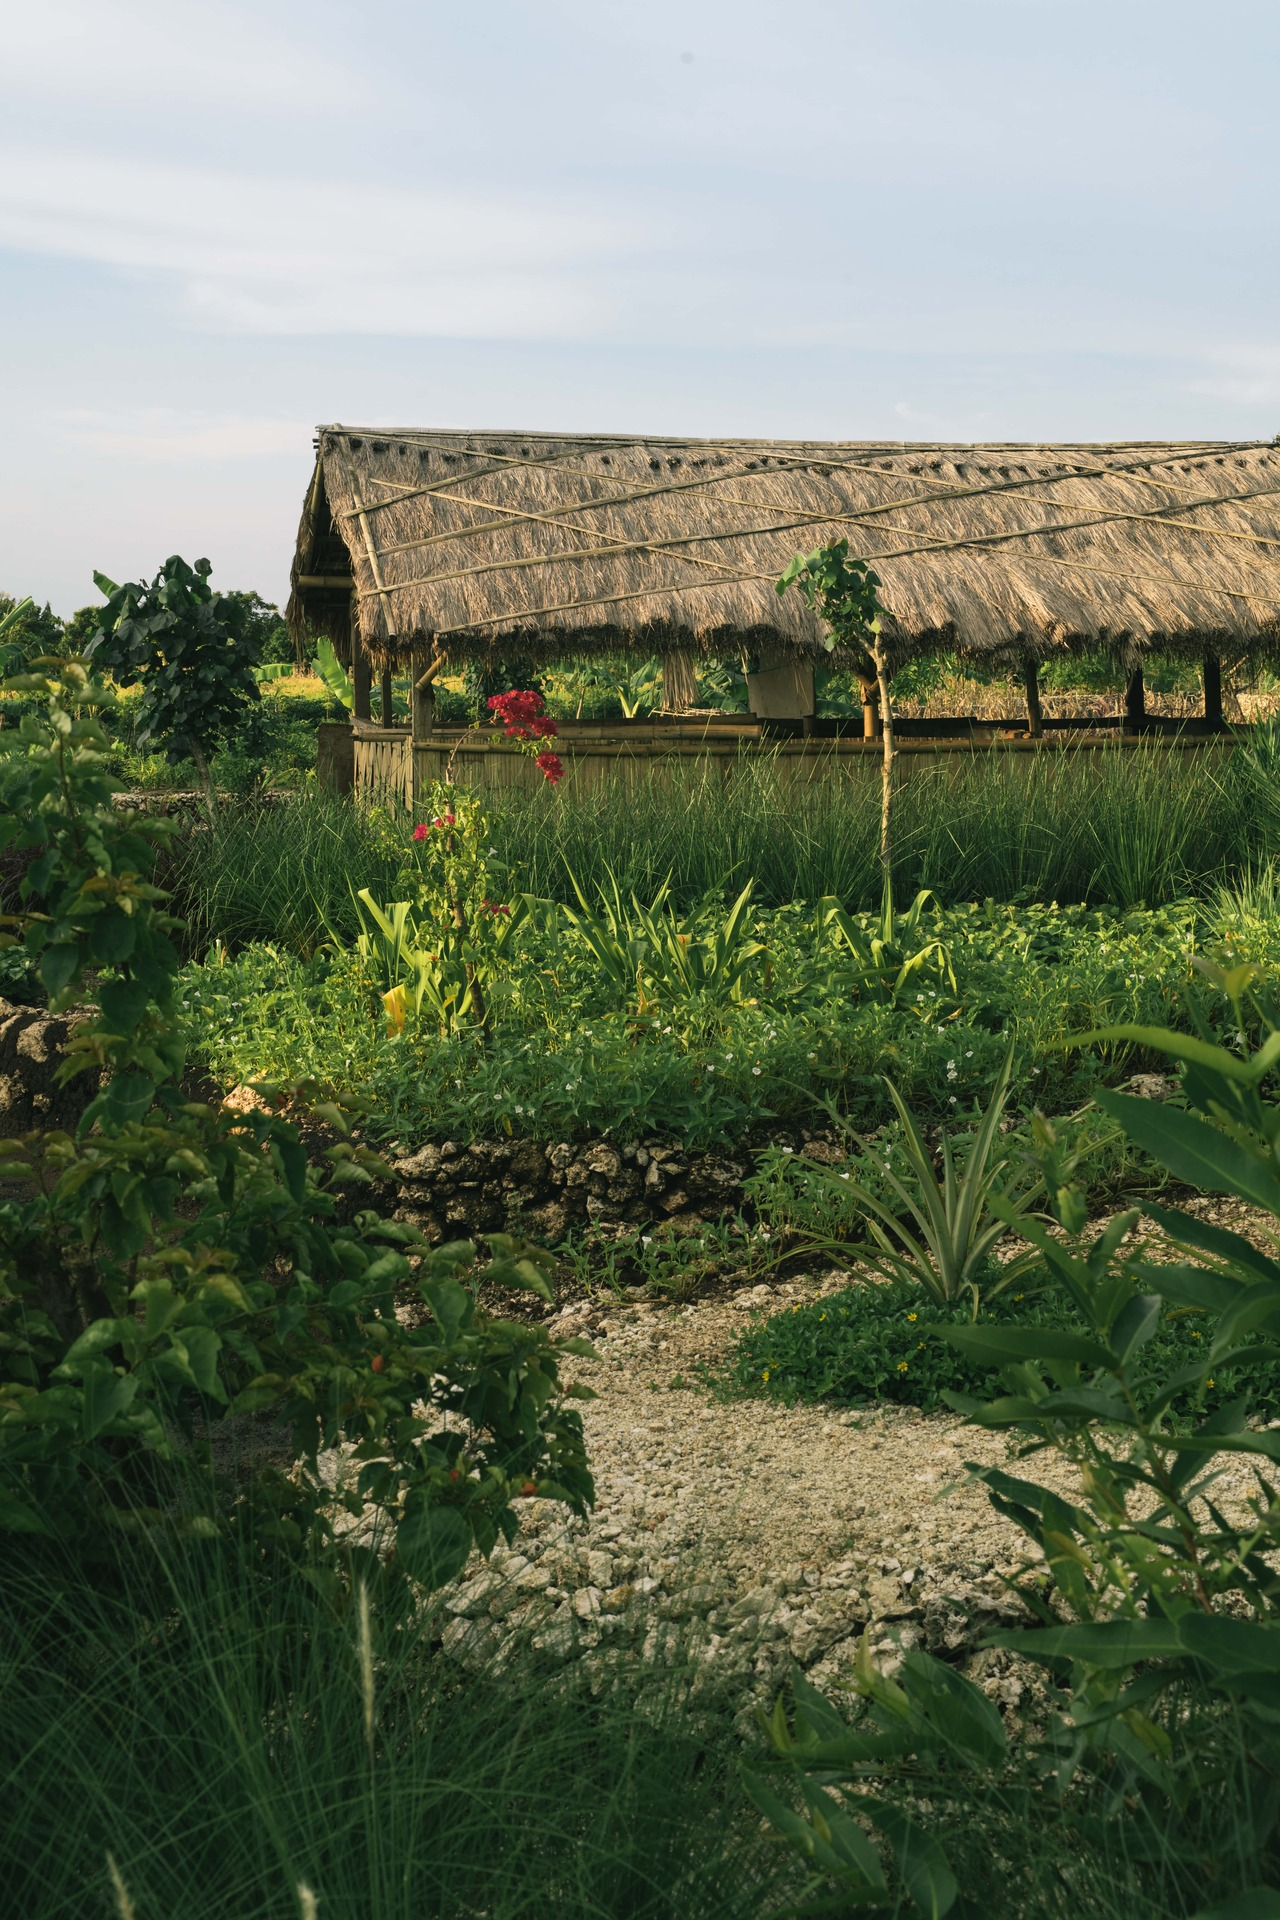 Building of the farm with garden and red flowers in the forefront